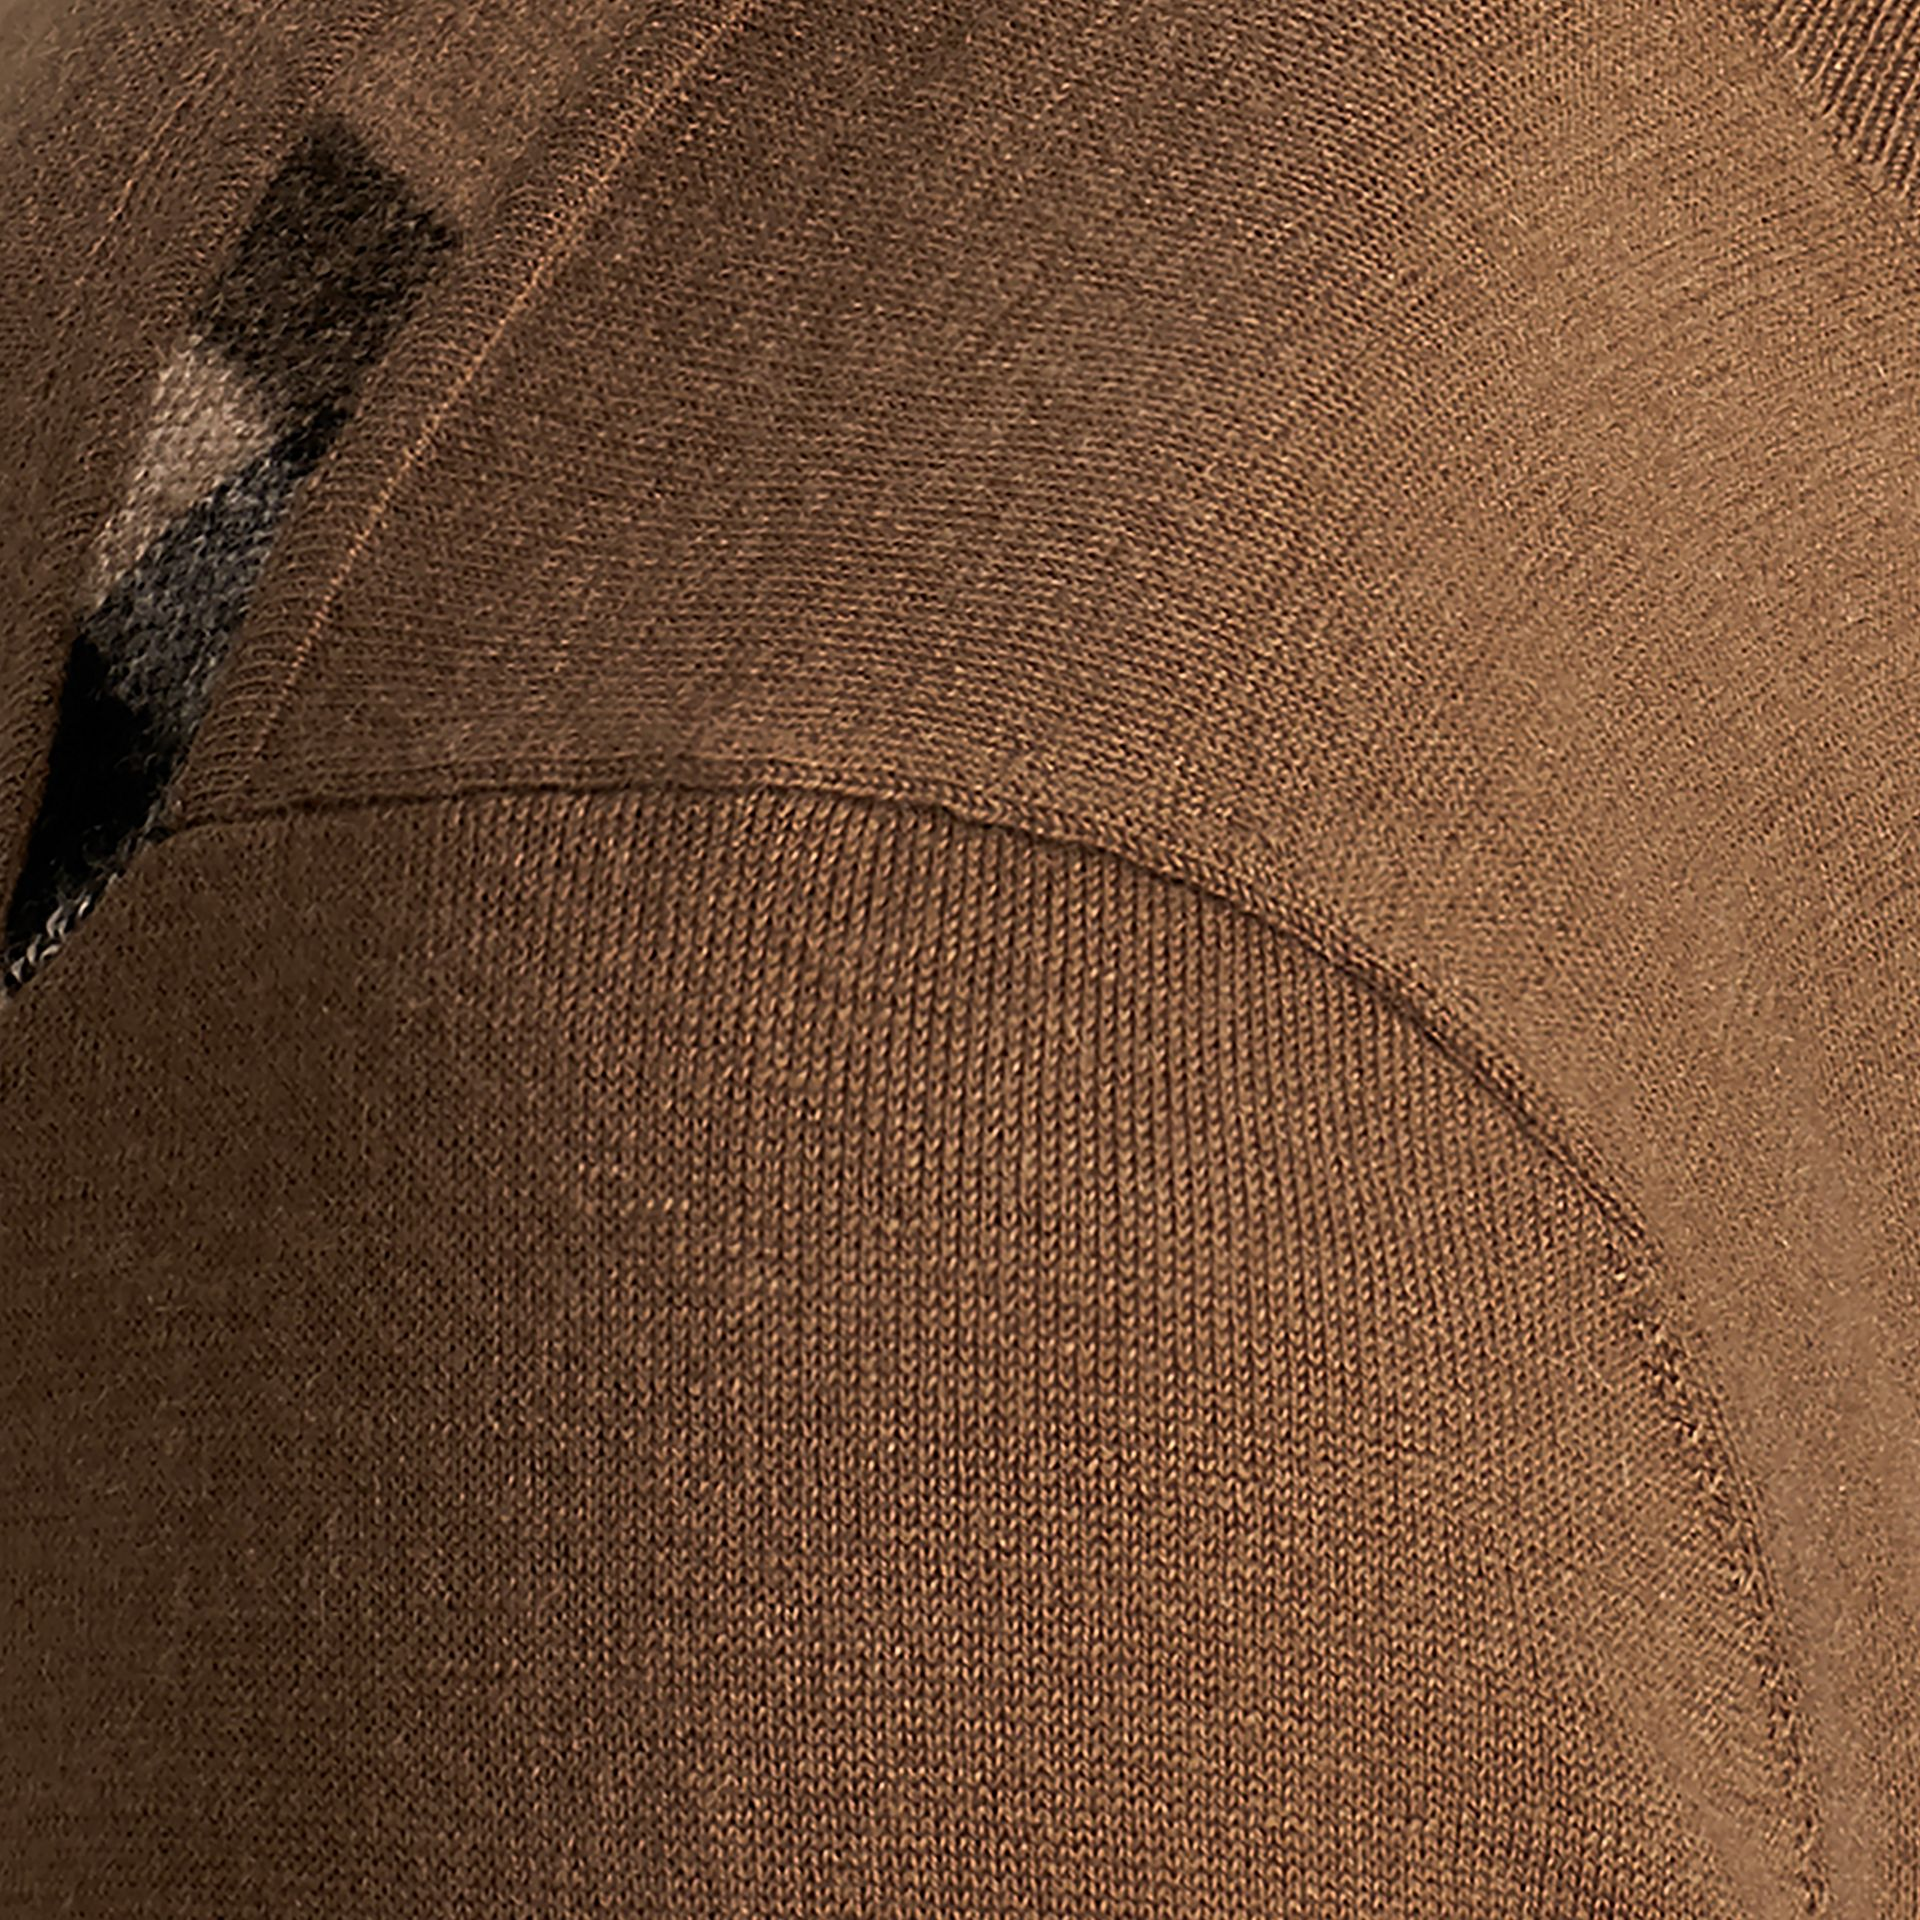 Camel Lightweight Crew Neck Cashmere Sweater with Check Trim Camel - gallery image 2